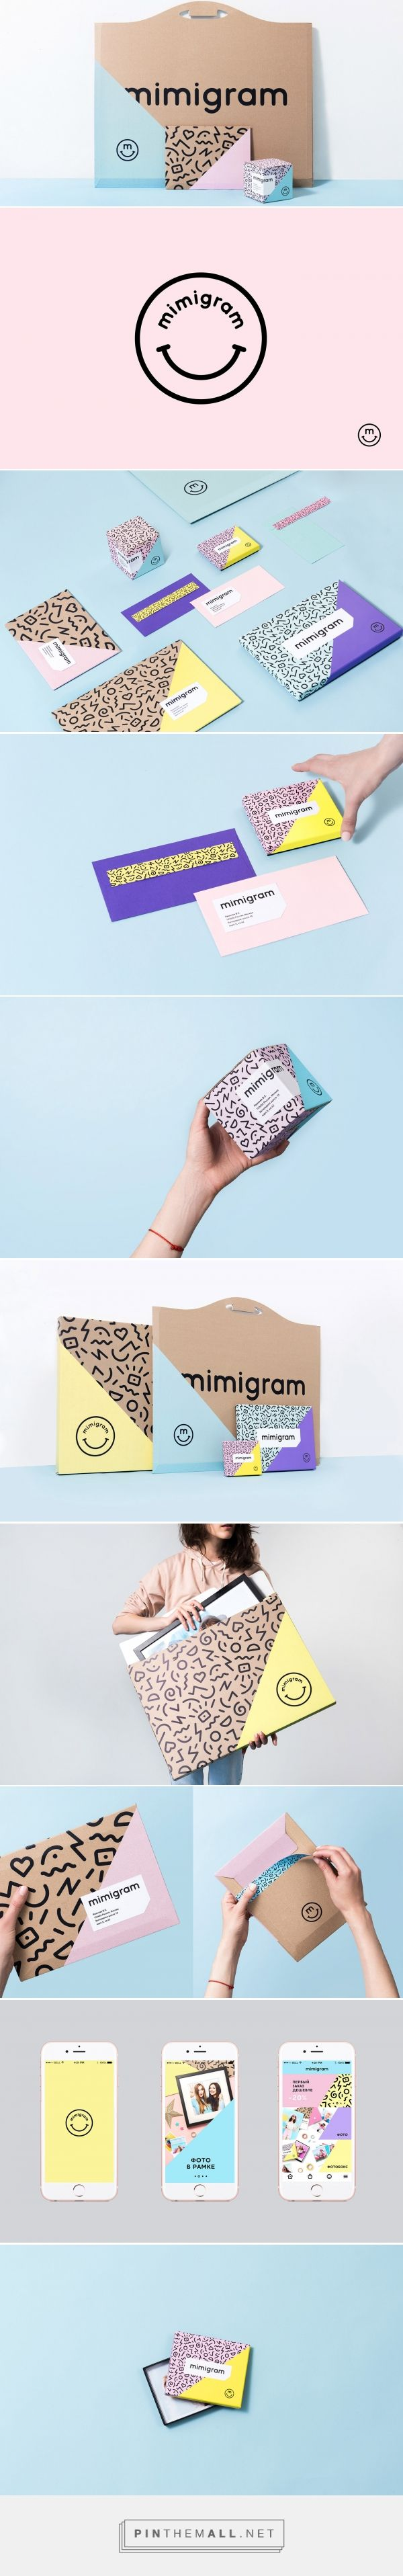 Mimigram Corporate Identity - Mindsparkle Mag... - a grouped images picture - Pin Them All